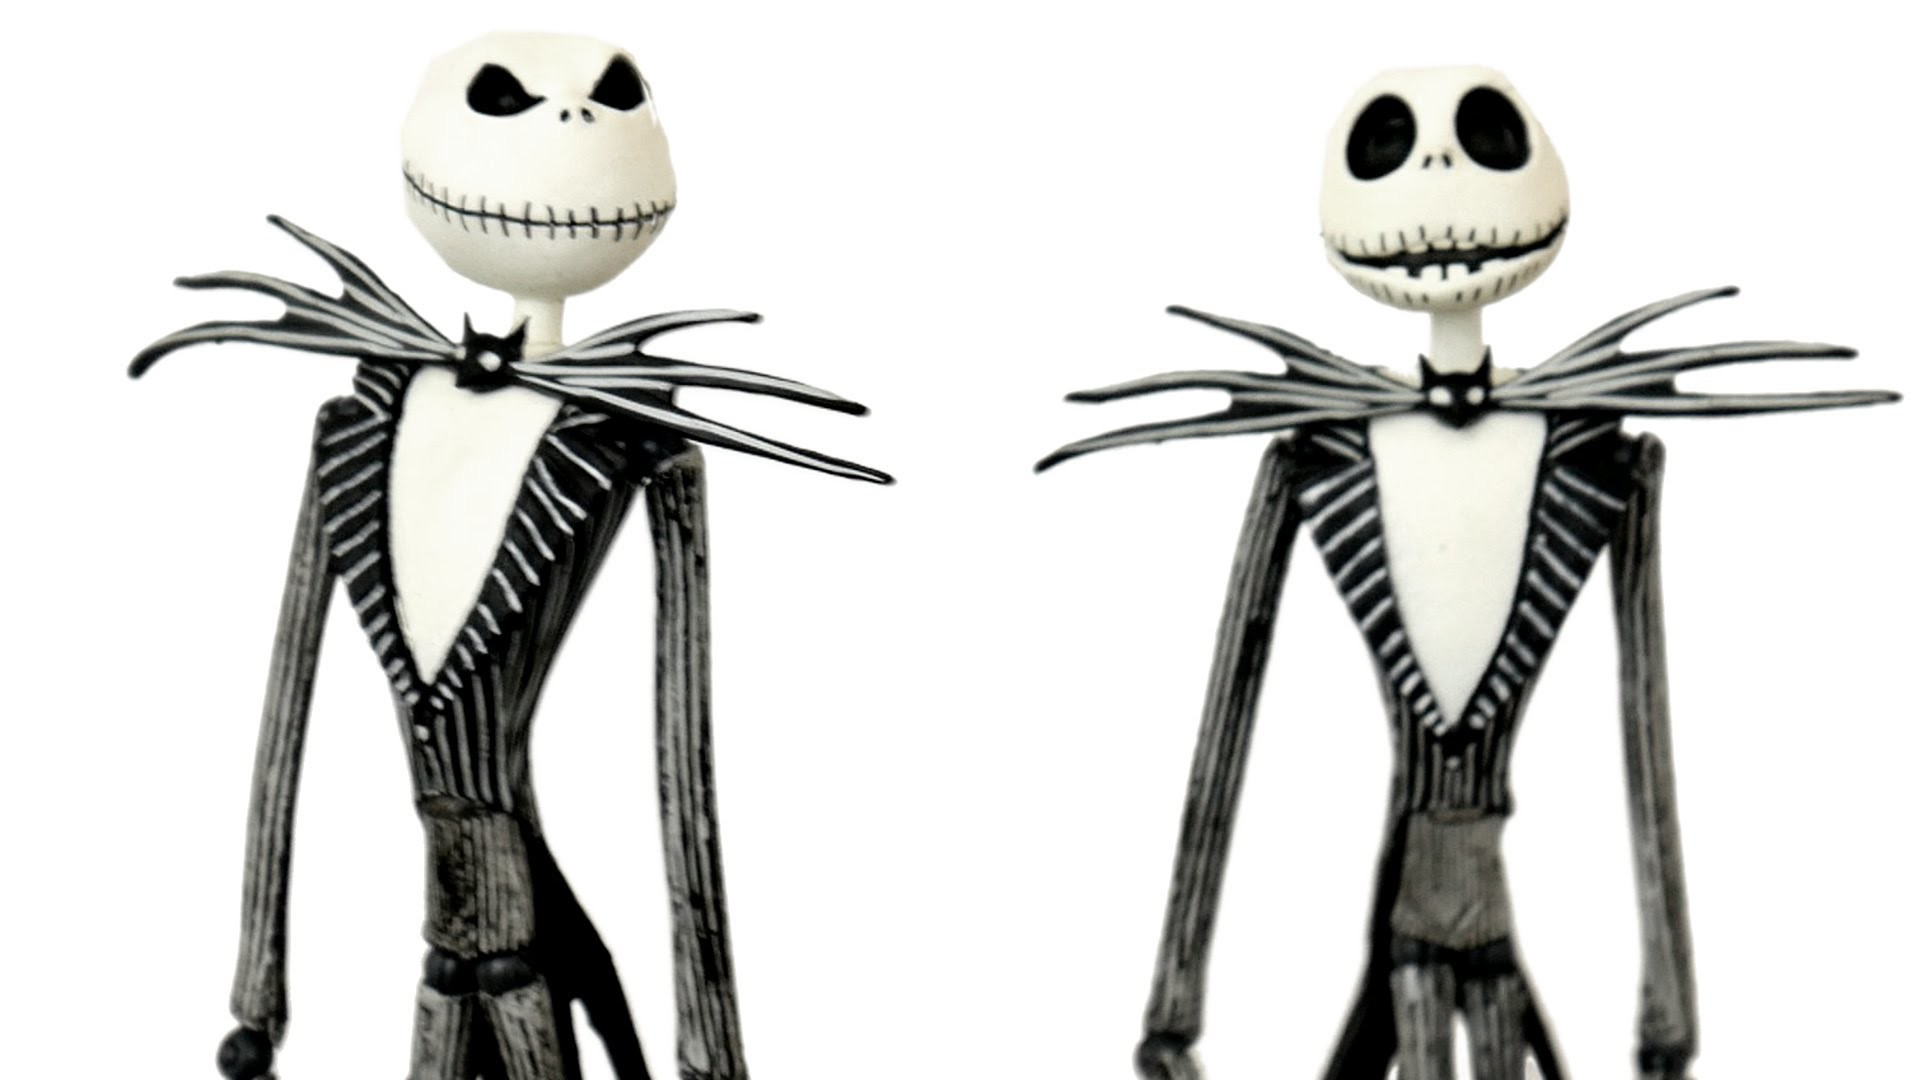 1920x1080 Jack Skellington Nightmare Before Christmas Toys R Us Exclusive Toy  Unboxing, Comparison & Review!! - YouTube